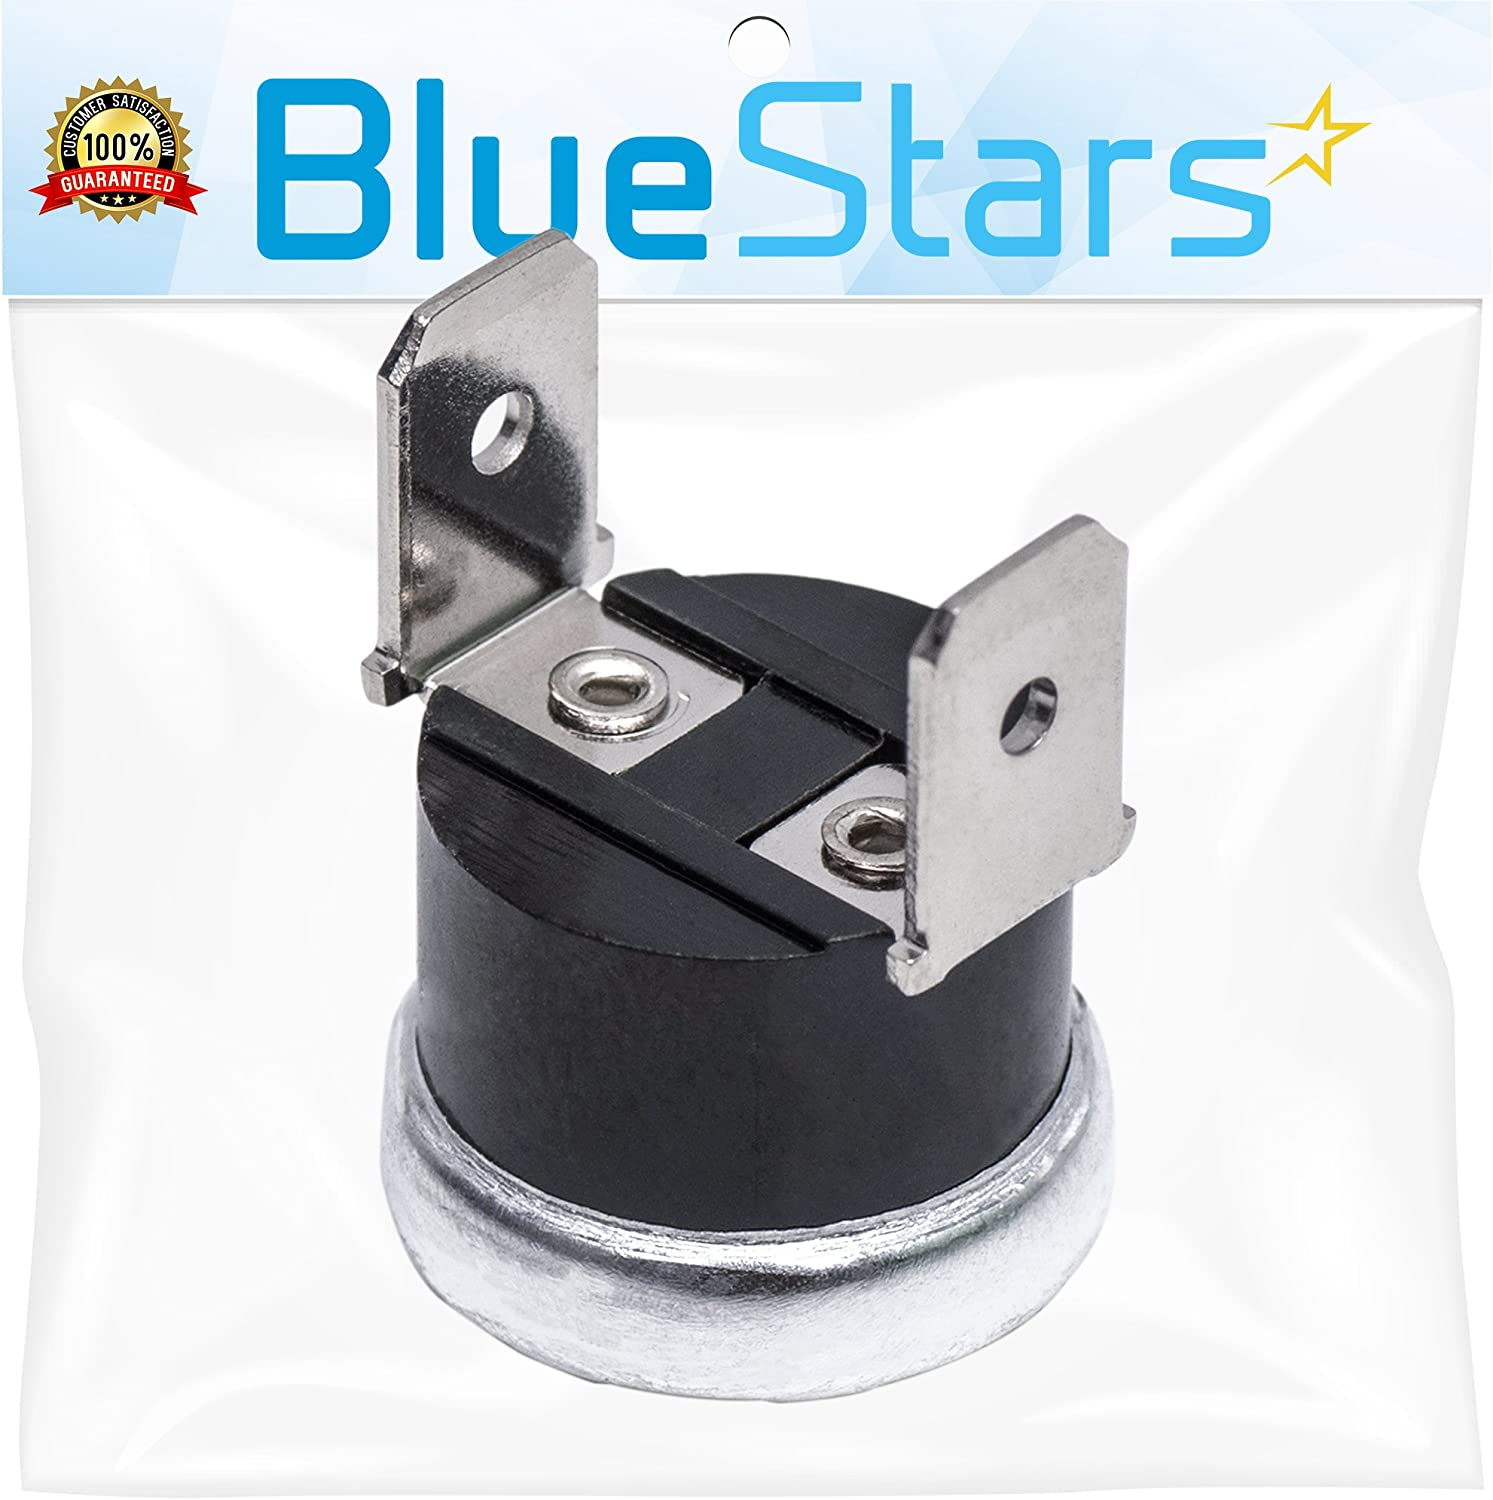 661566 Dishwasher High Limit Thermostat Replacement Part by Blue Stars - Exact Fit for Whirlpool & Kenmore Dishwashers - Replaces WP661566 3371618 W10339474 AP6010246 PS11743423 AP6010246